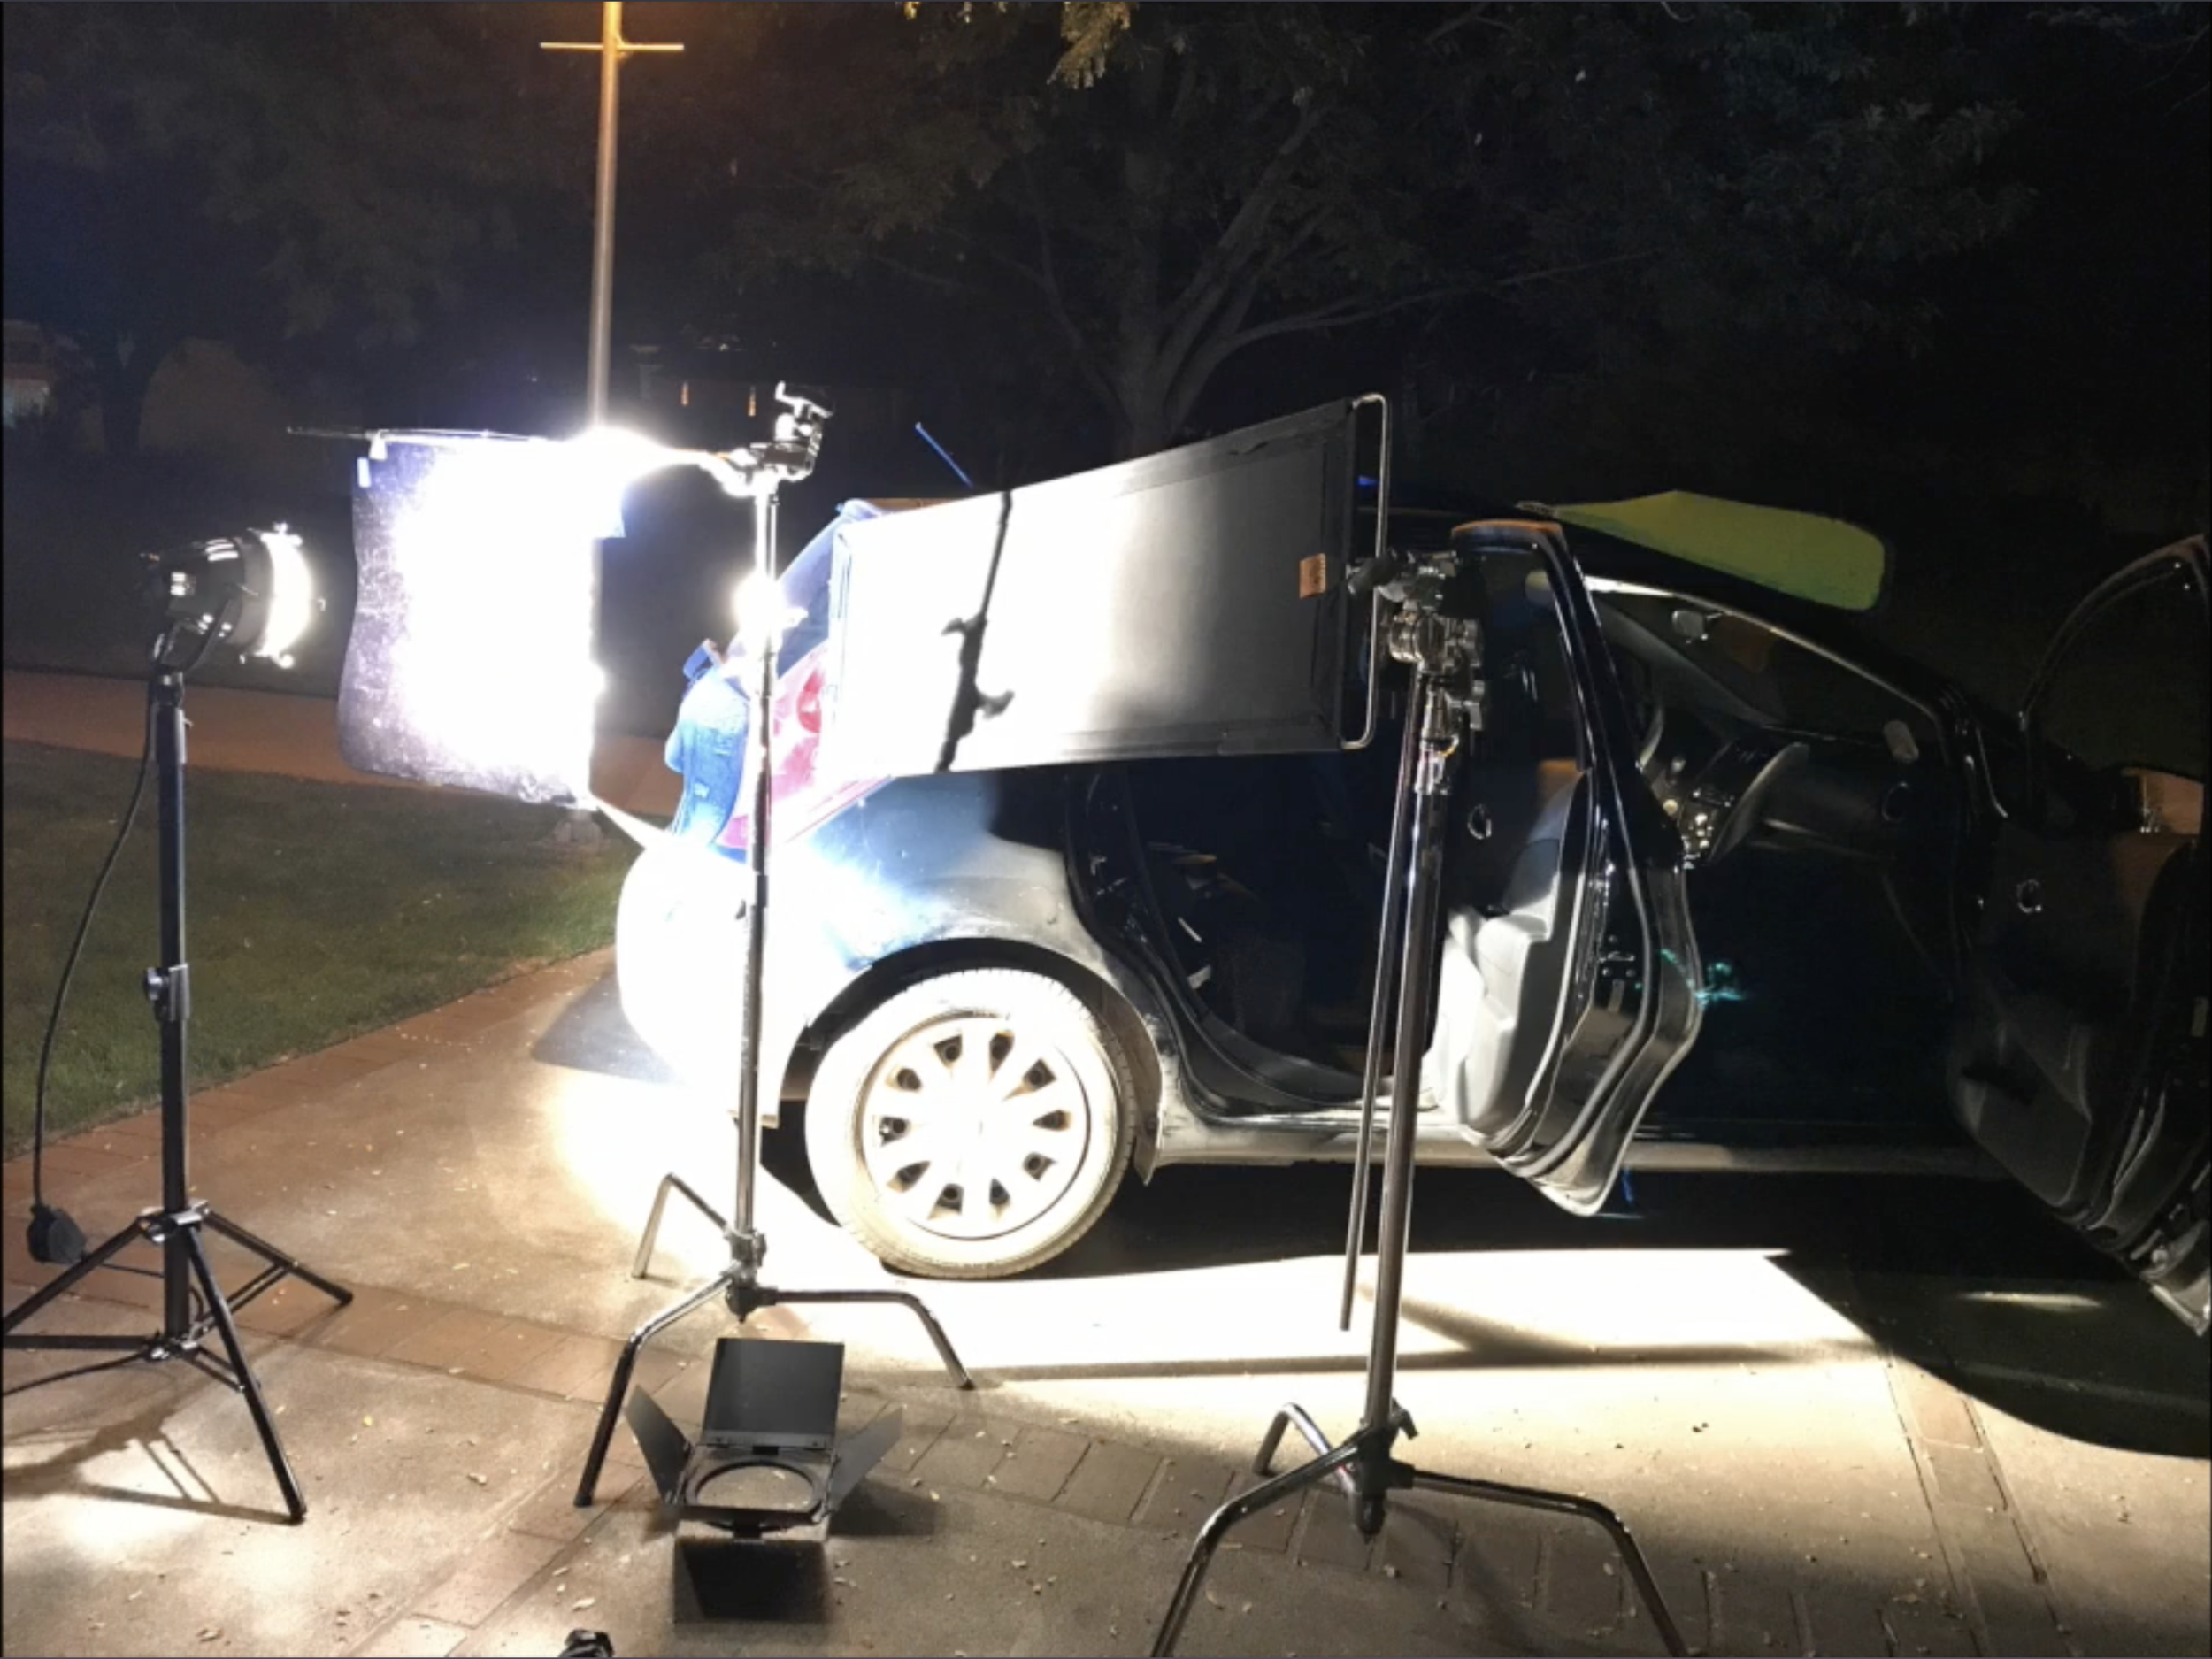 A student sets up lights for a scene inside a car.